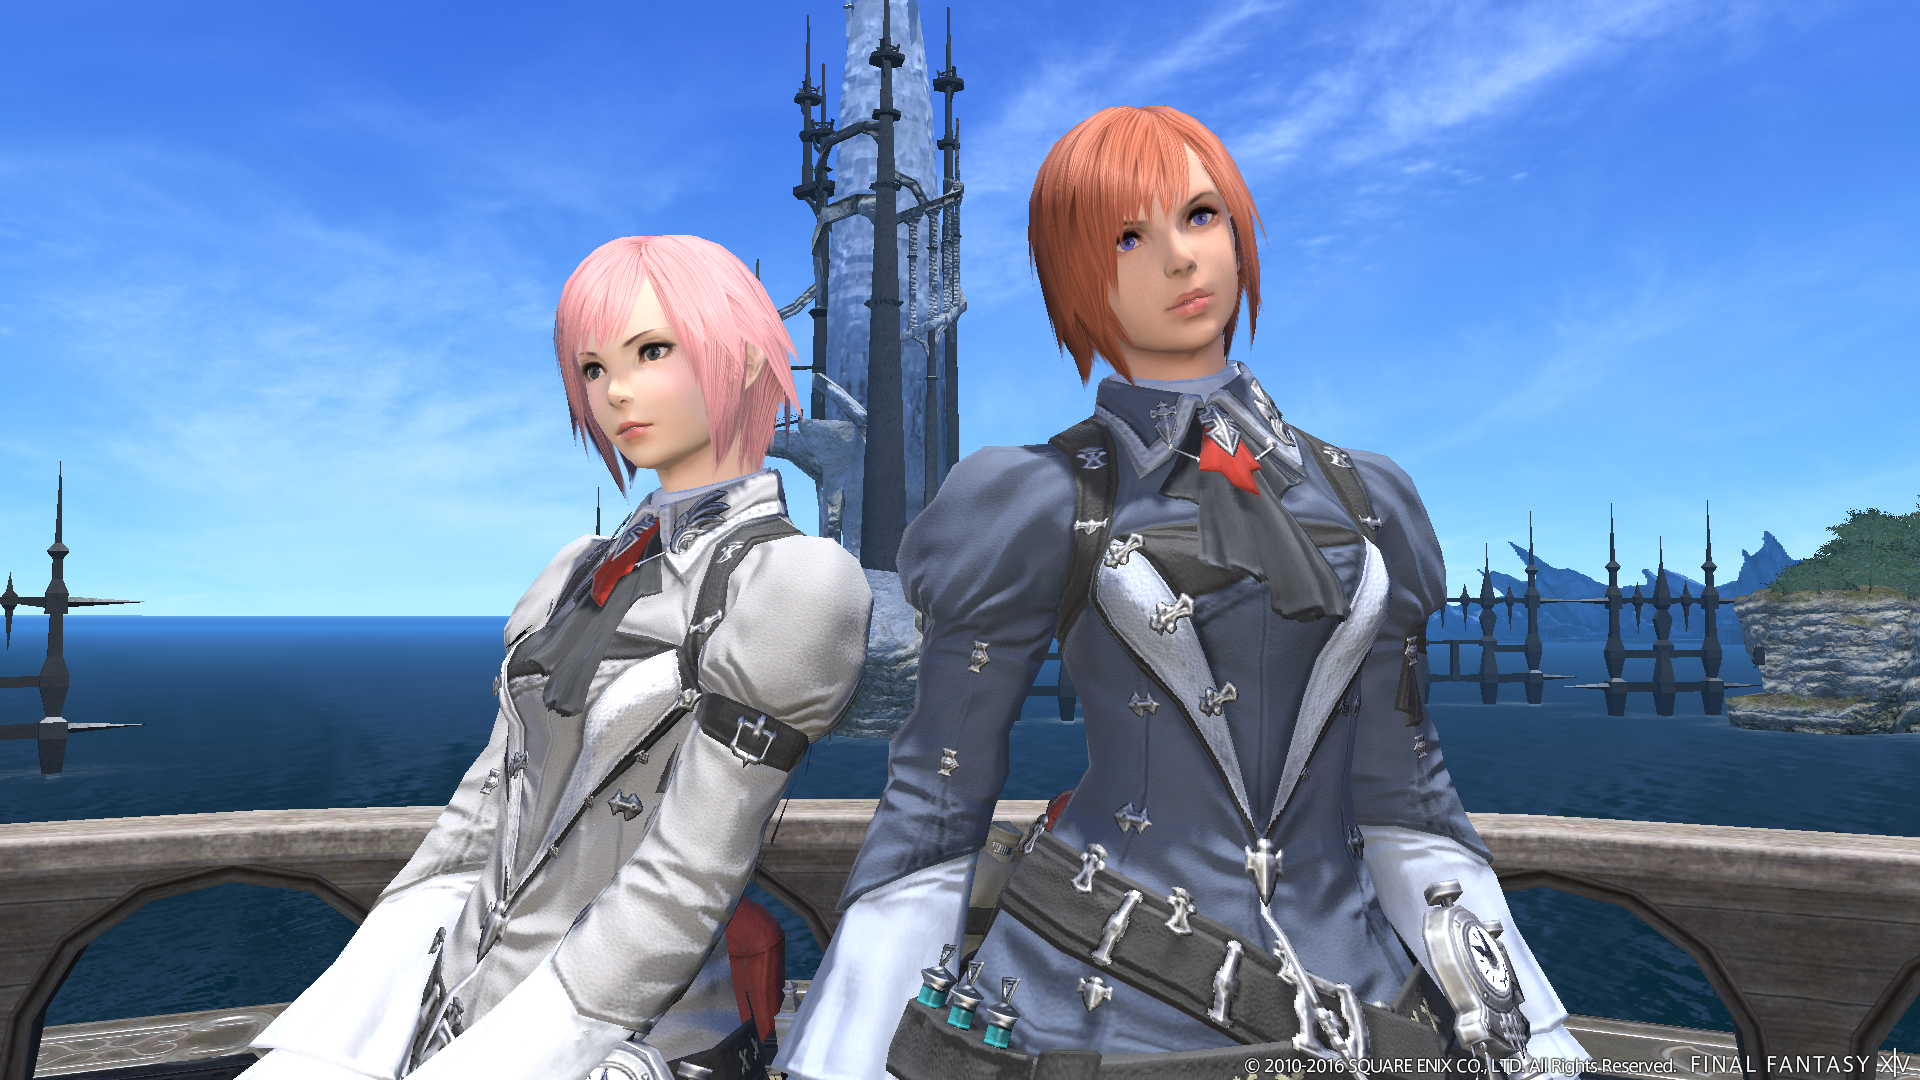 Final Fantasy XIV Update 3 5 Coming Mid-January with Tons of